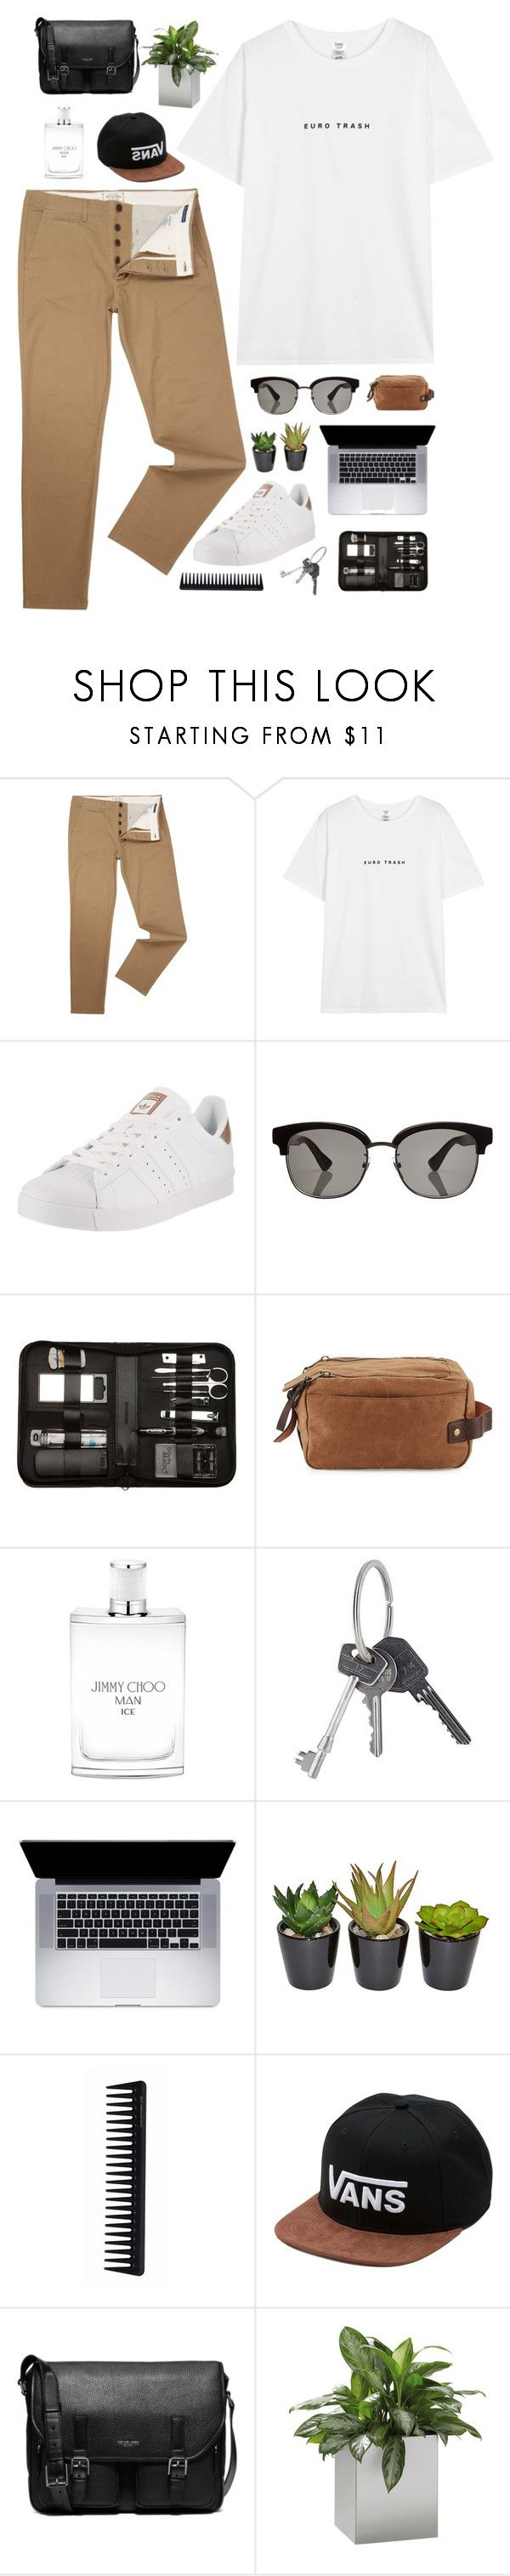 """""""Men's #2"""" by amy-lopezx ❤ liked on Polyvore featuring Jack & Jones, adidas, Gucci, Bey-Berk, Will Leather Goods, Jimmy Choo, Givenchy, The French Bee, GHD and Vans"""